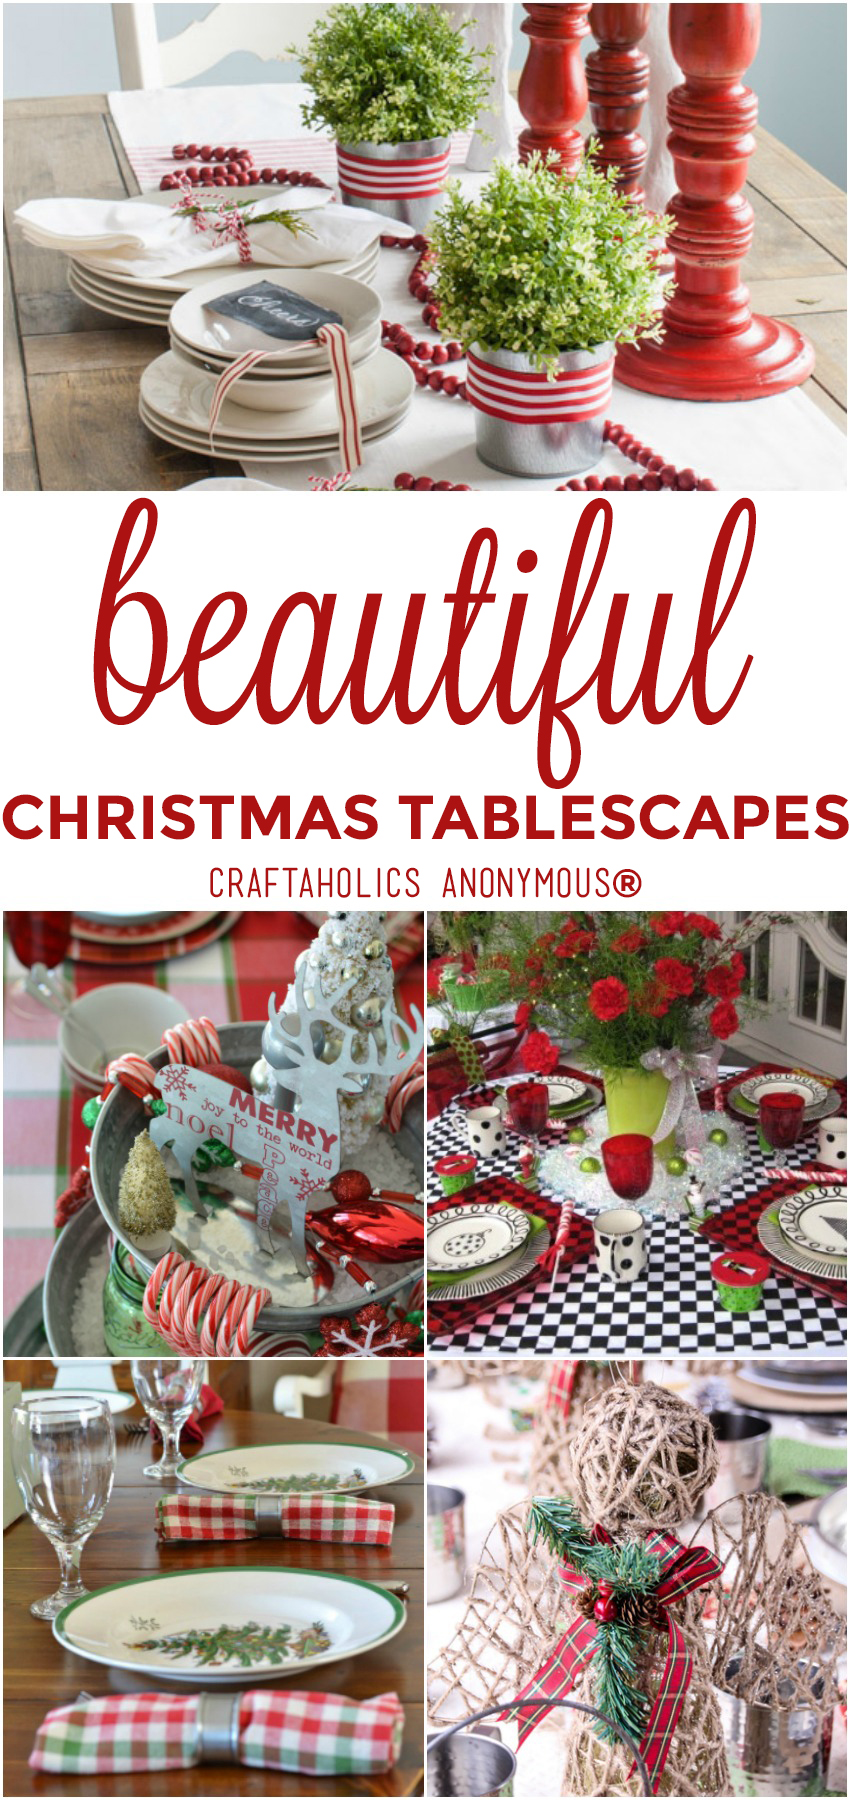 25 Beautiful Christmas Tablescapes from craftaholicsanonymous.net